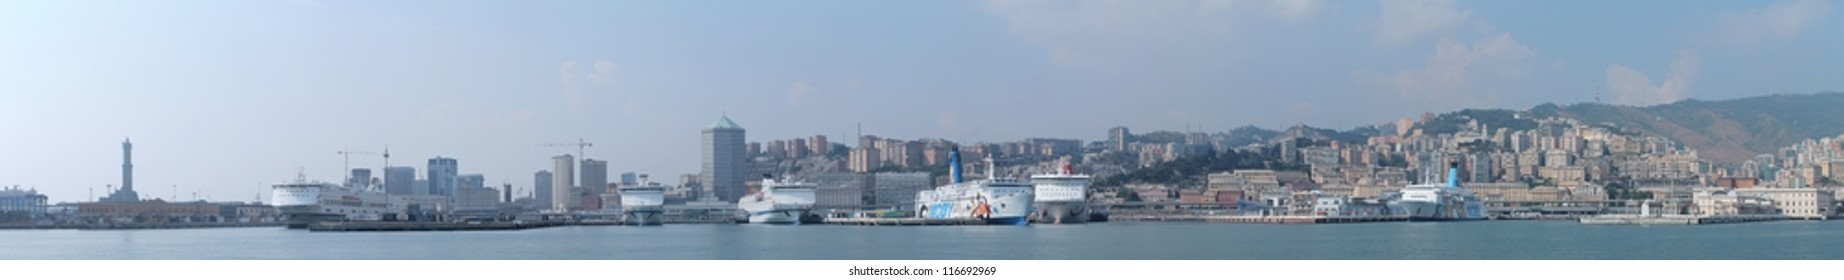 Panorama of the port of Genoa, with ferries docked. This photo is made attaching together various photos